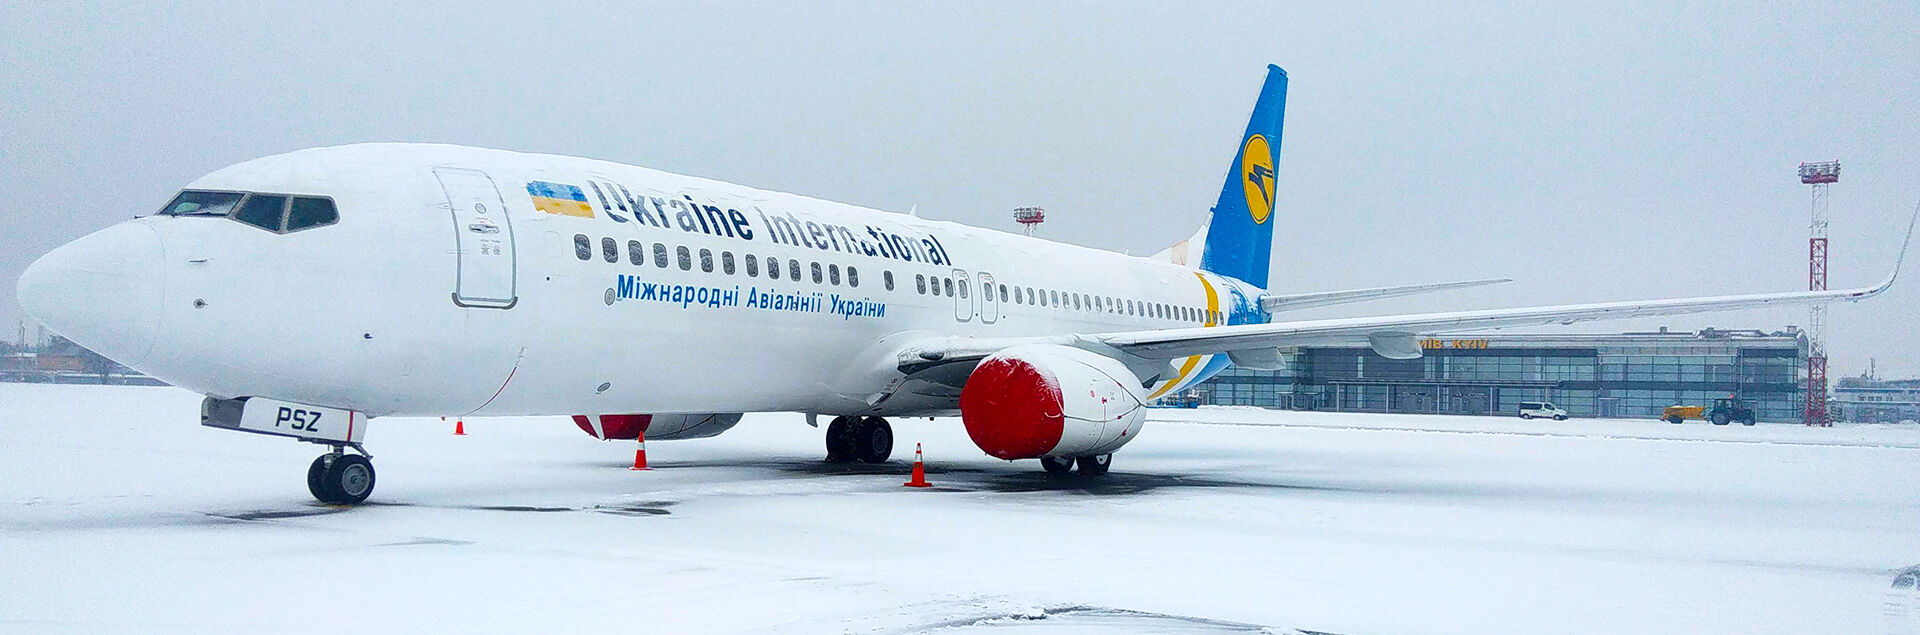 UIA received another Boeing 737-800 NG aircraft